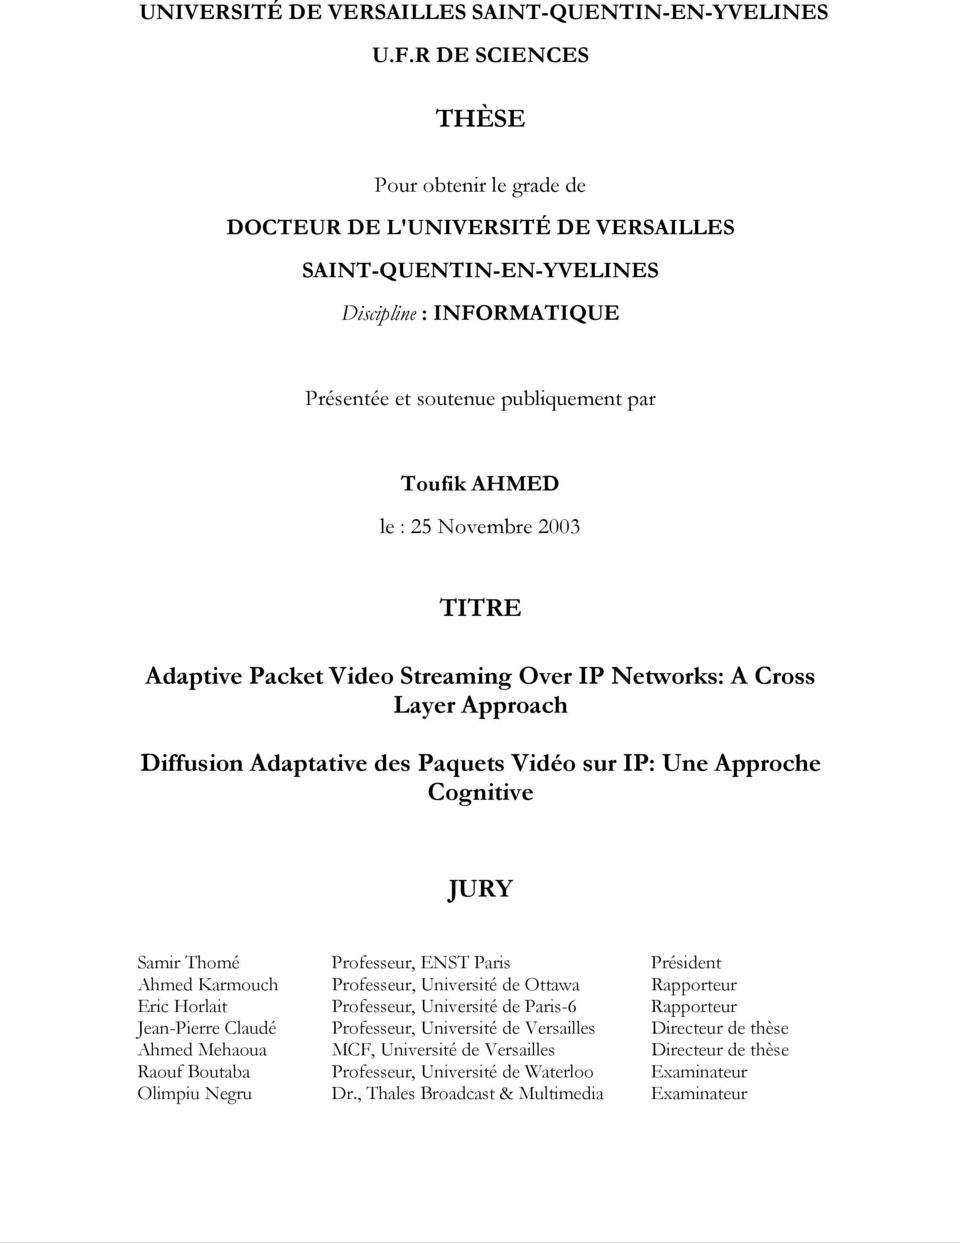 Novembre 2003 TITRE Adaptive Packet Video Streaming Over IP Networks: A Cross Layer Approach Diffusion Adaptative des Paquets Vidéo sur IP: Une Approche Cognitive JURY Samir Thomé Professeur, ENST